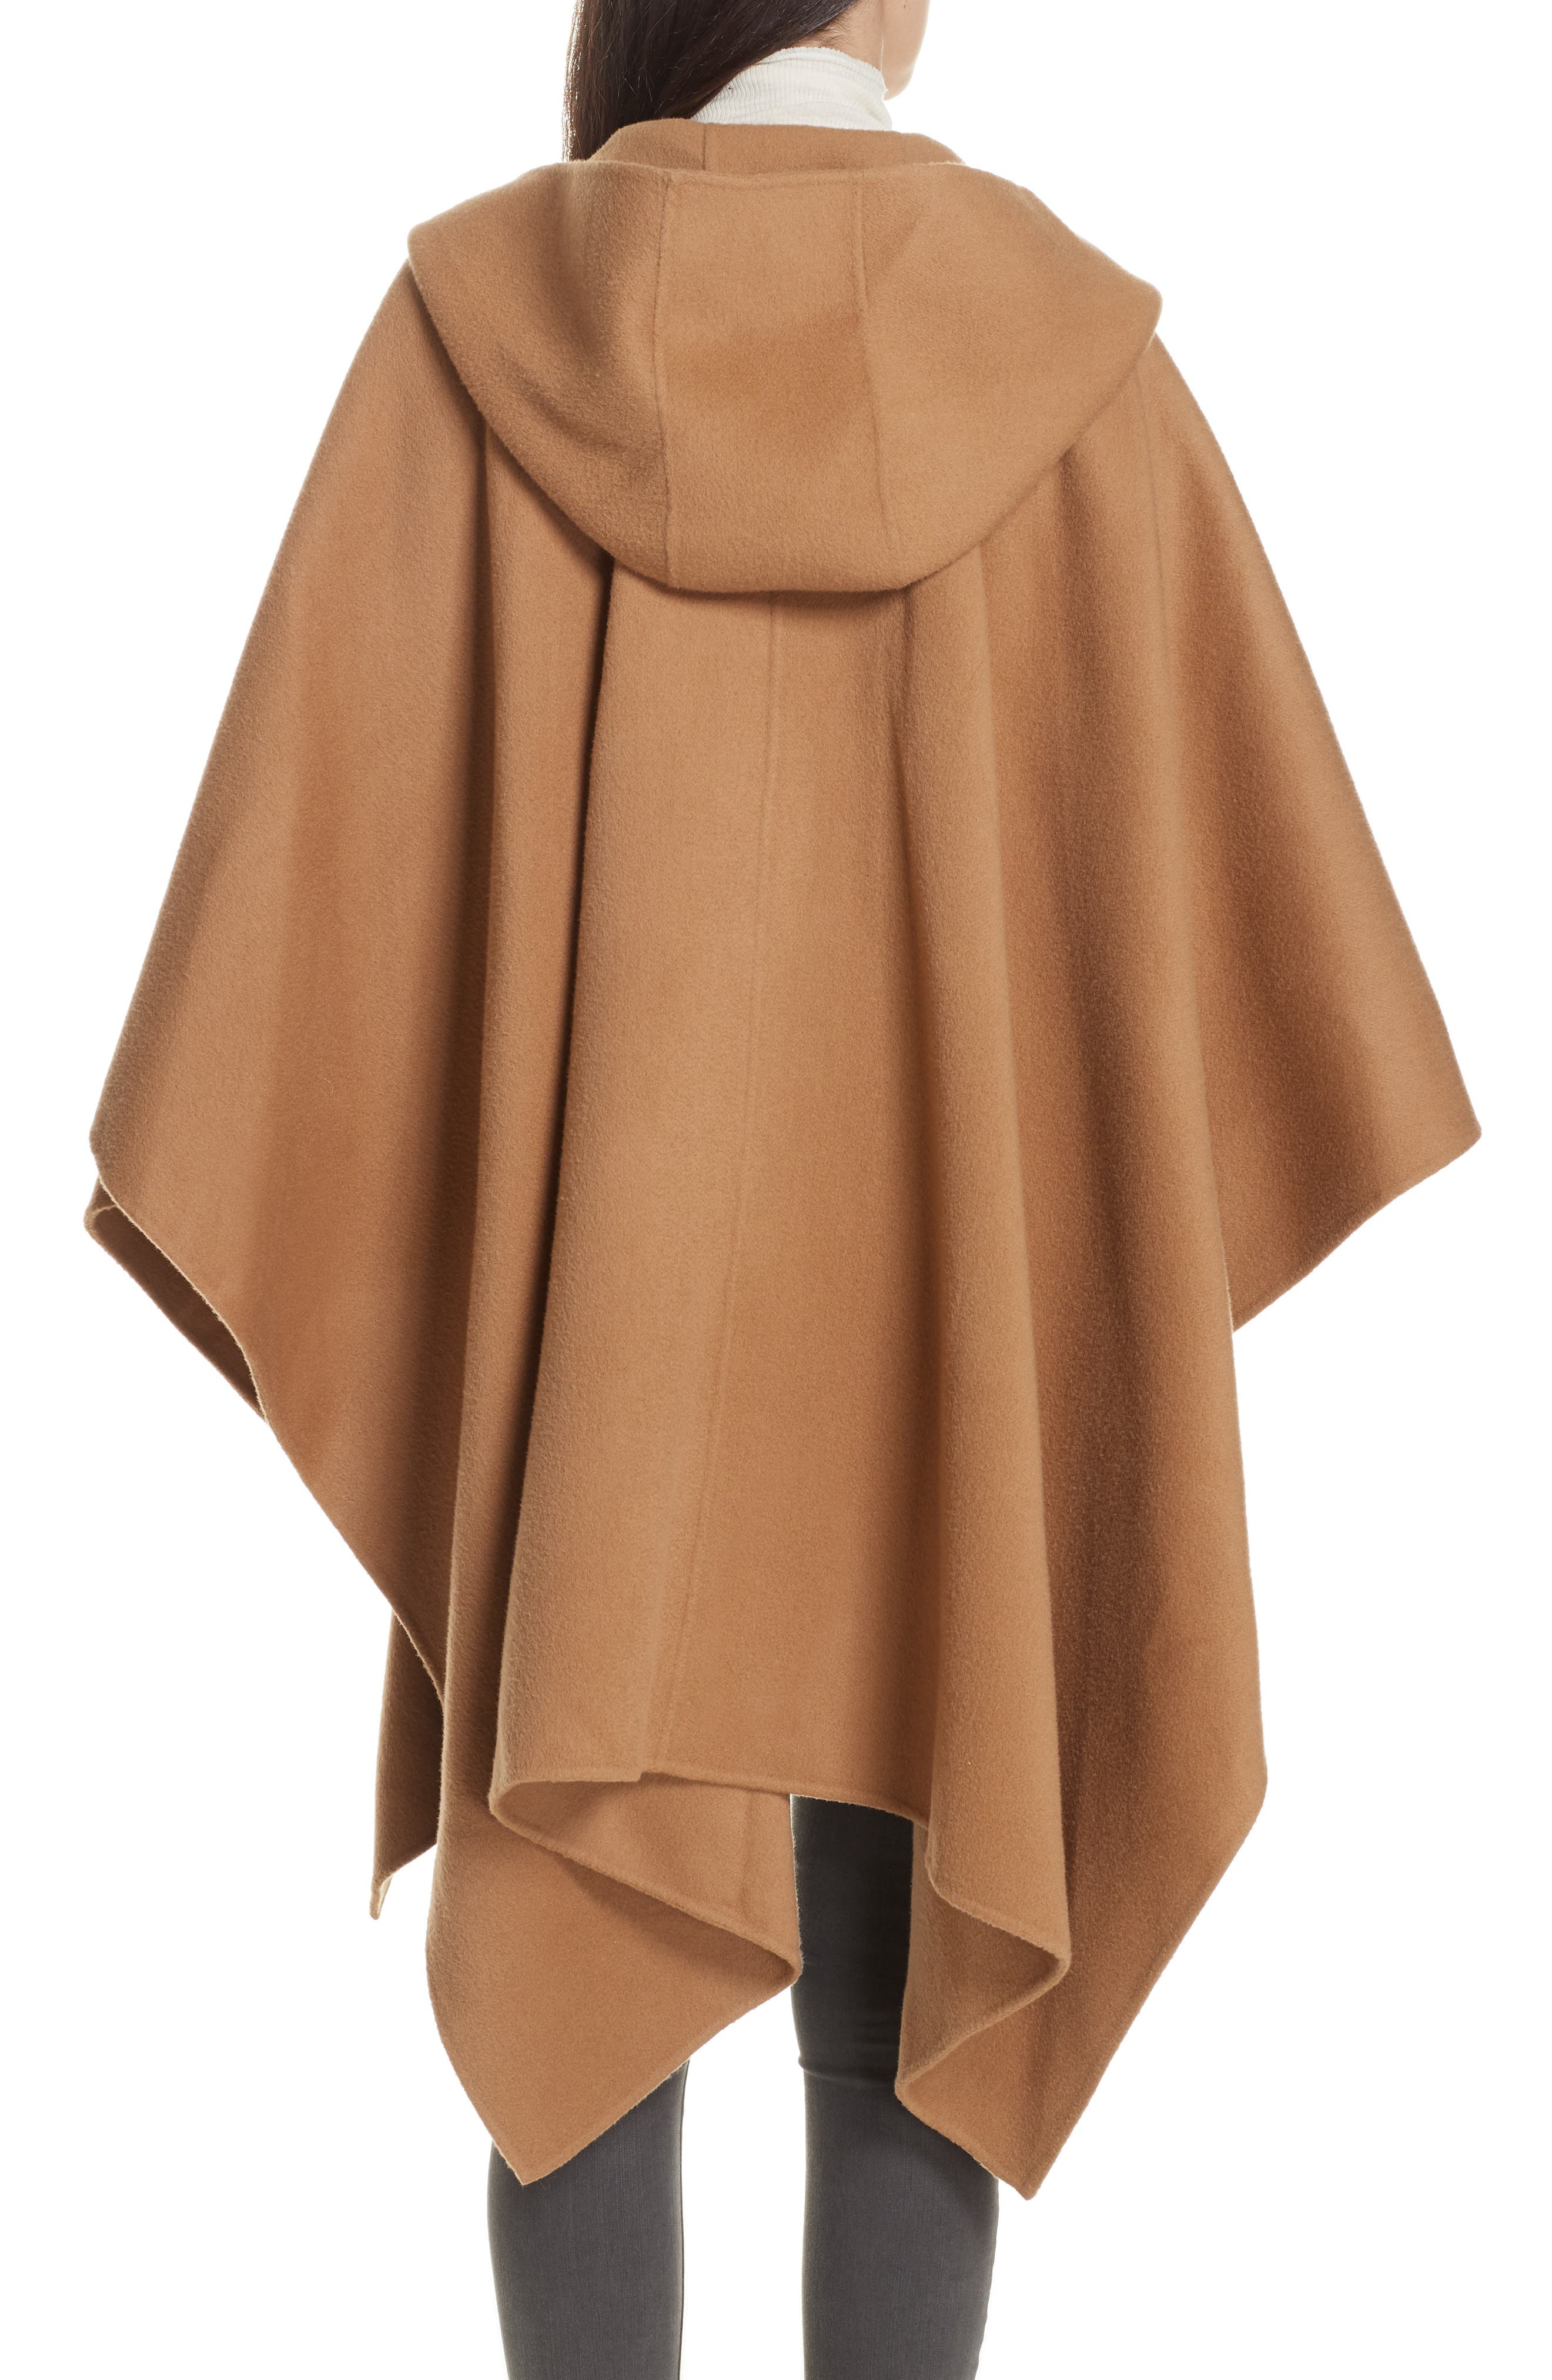 New Divide Hooded Poncho Coat,                             Alternate thumbnail 2, color,                             200